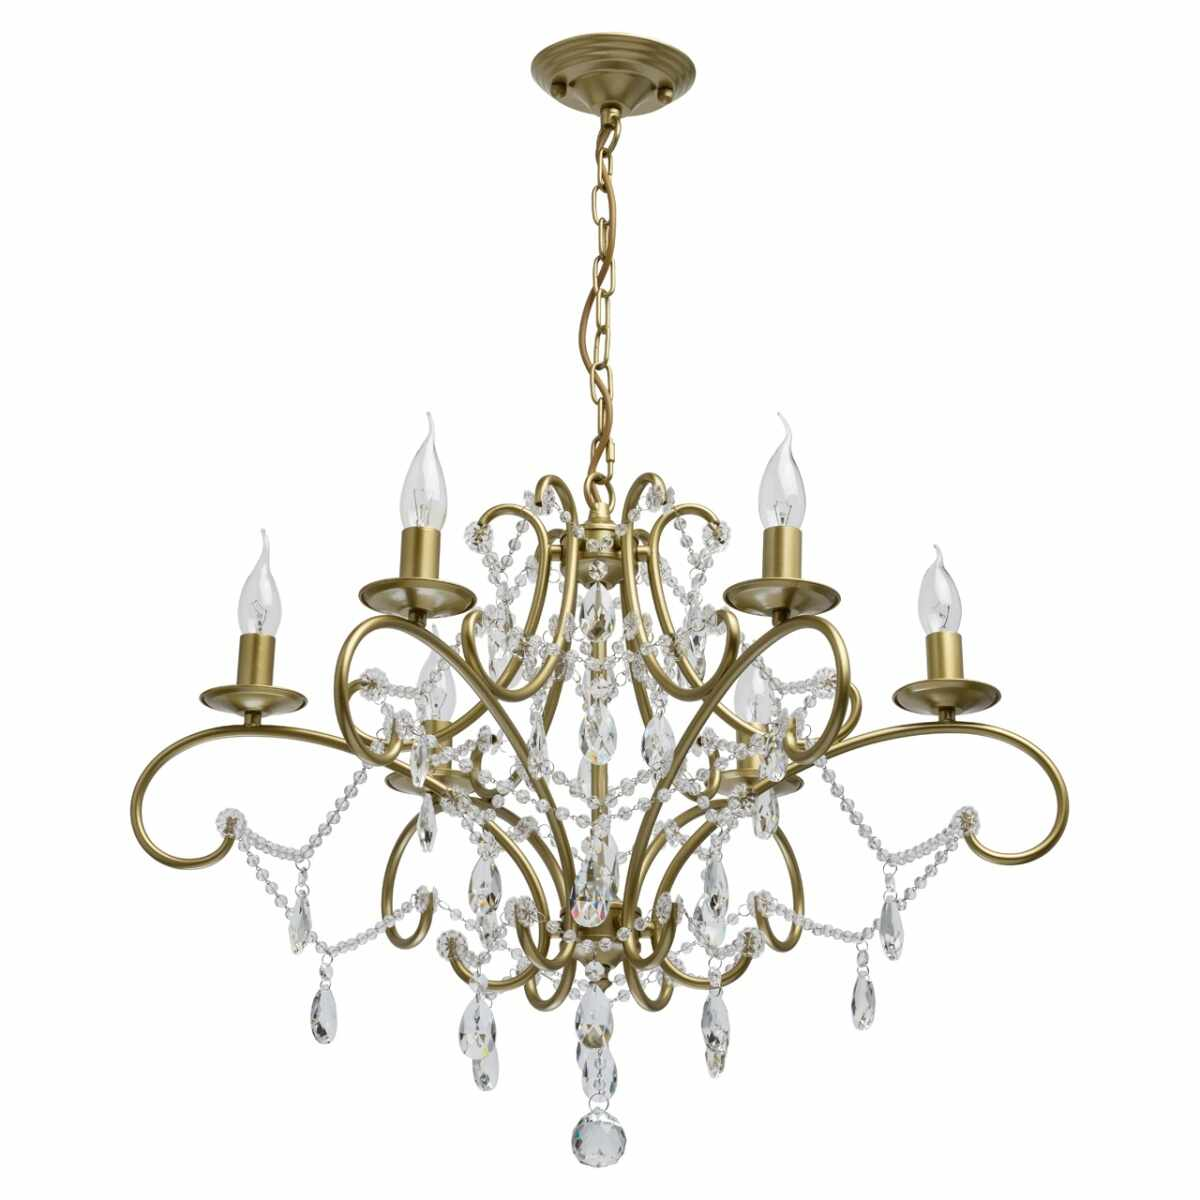 Candelabru MW-LIGHT Crystal 373014606 la pret 950 lei